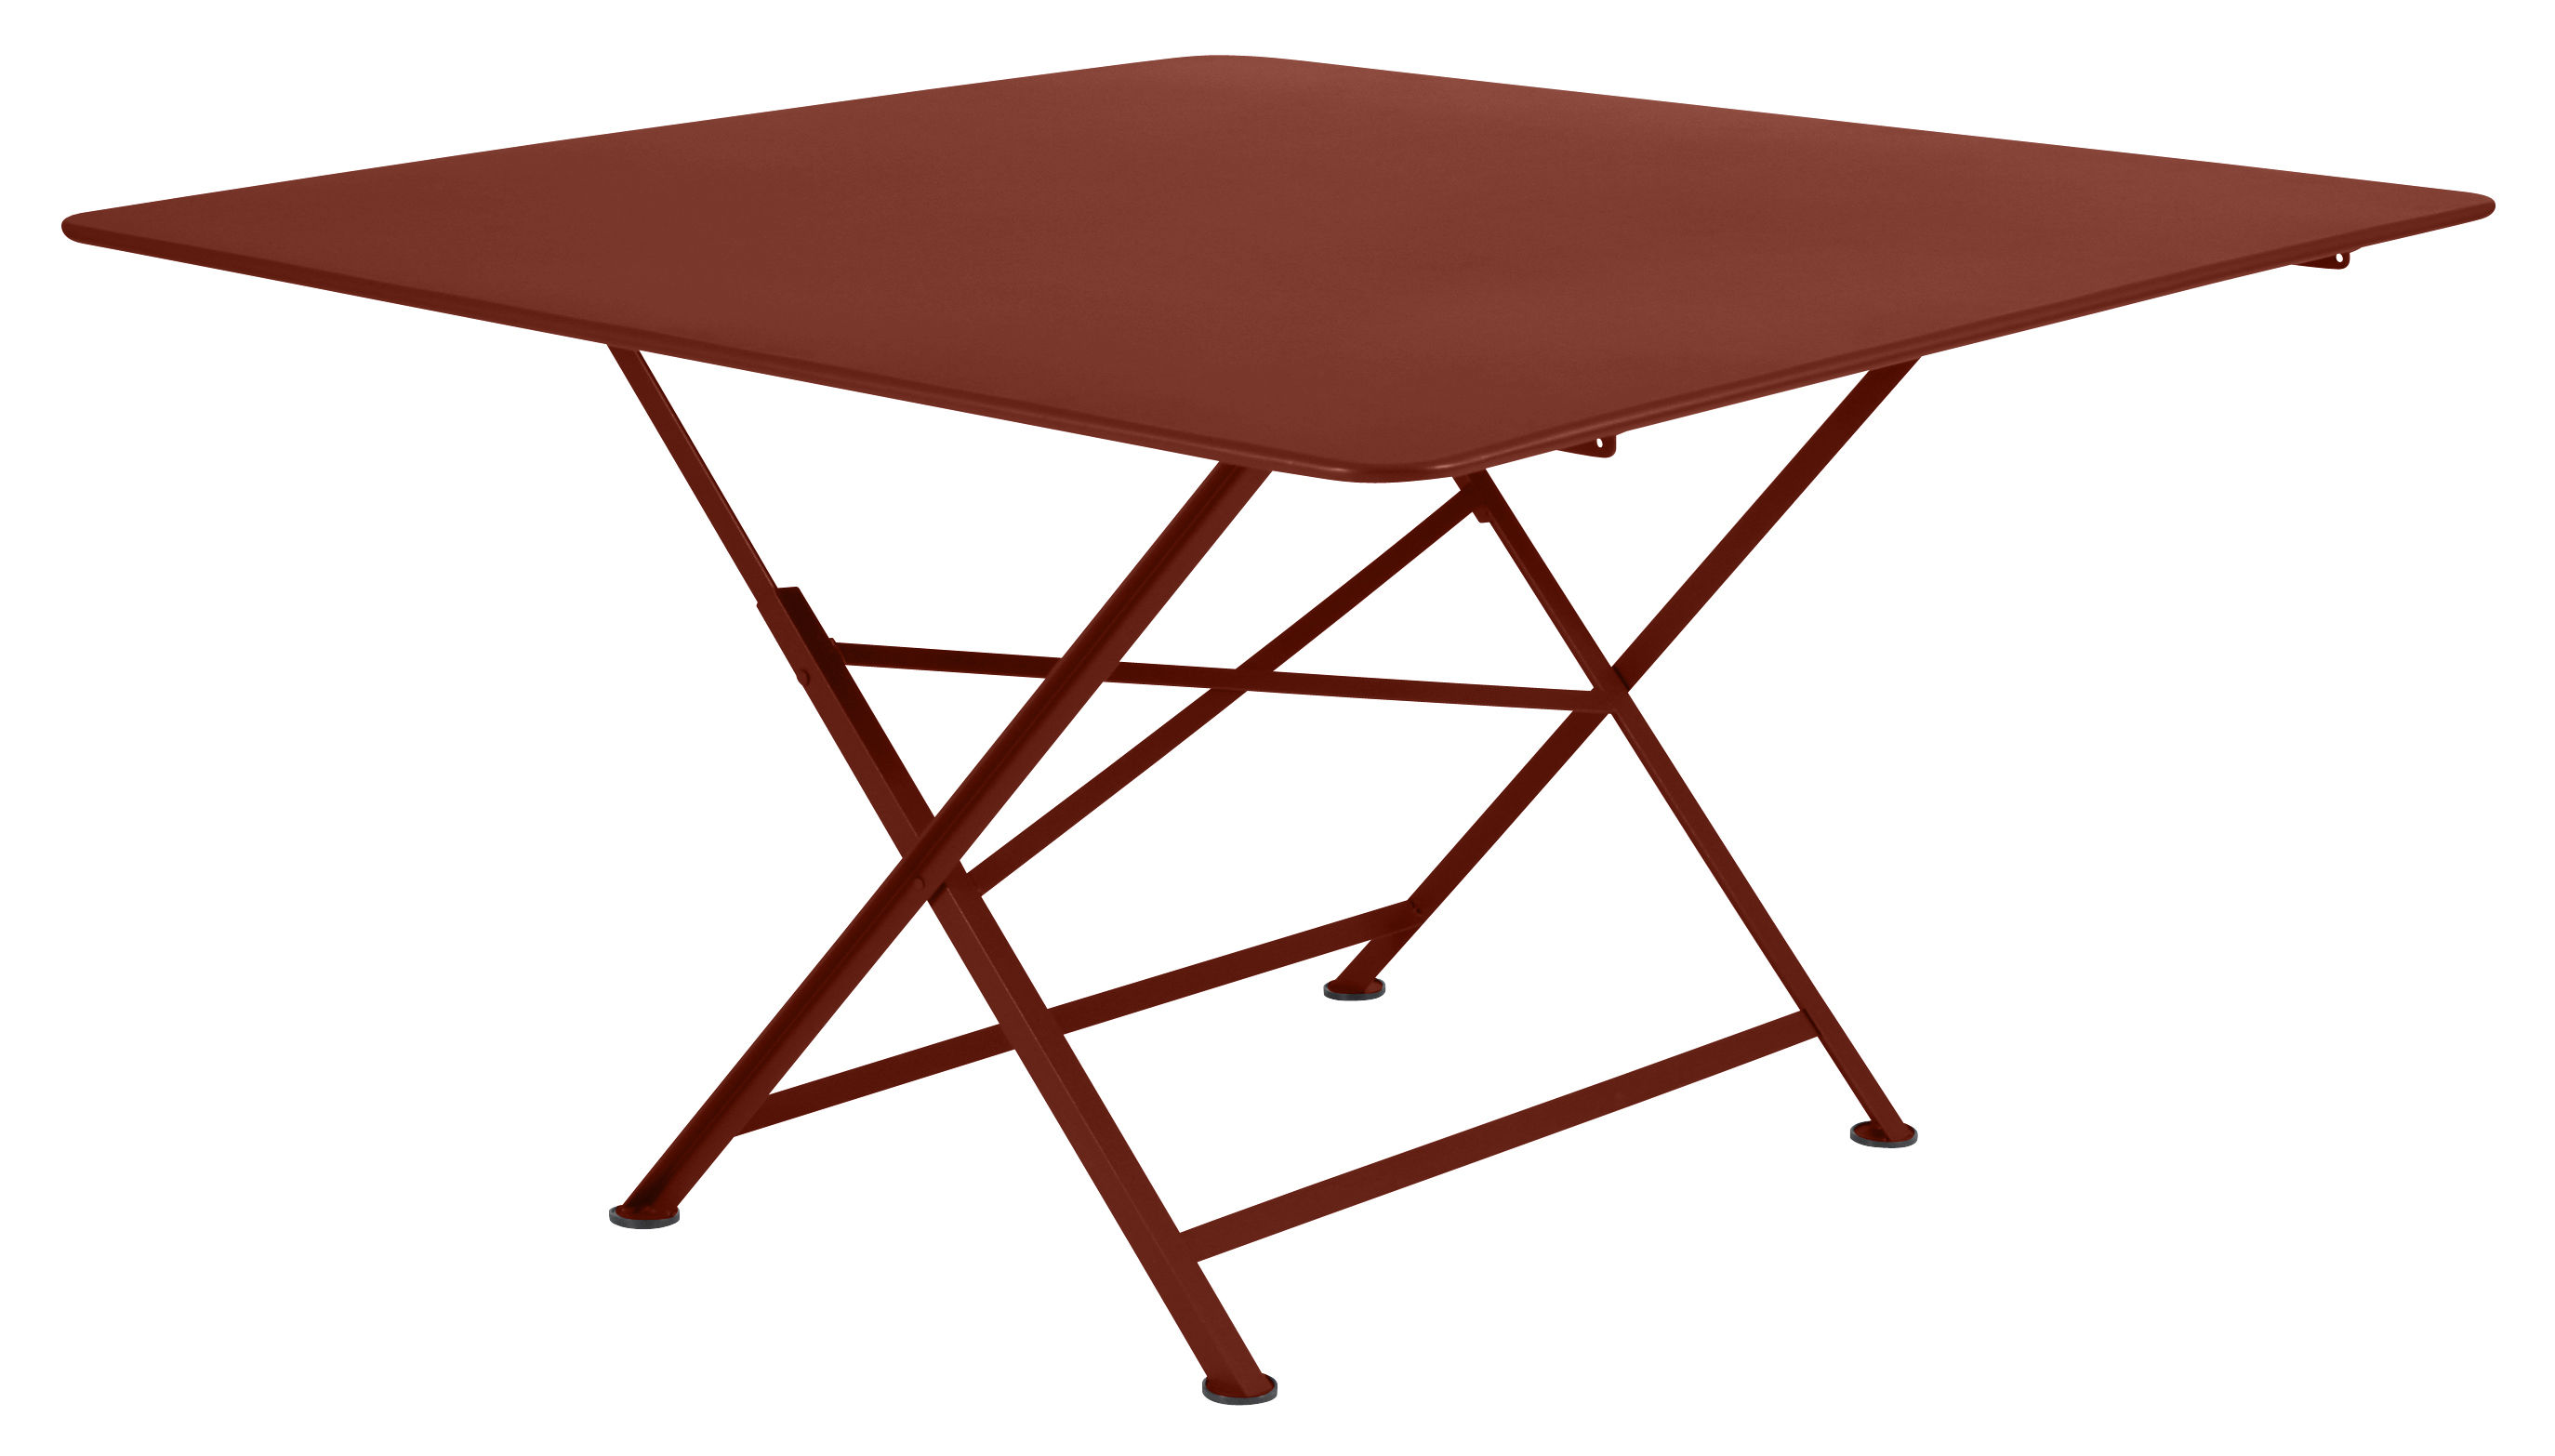 Table De Jardin Rouge Table Pliante Cargo 128 X 128 Cm Fermob